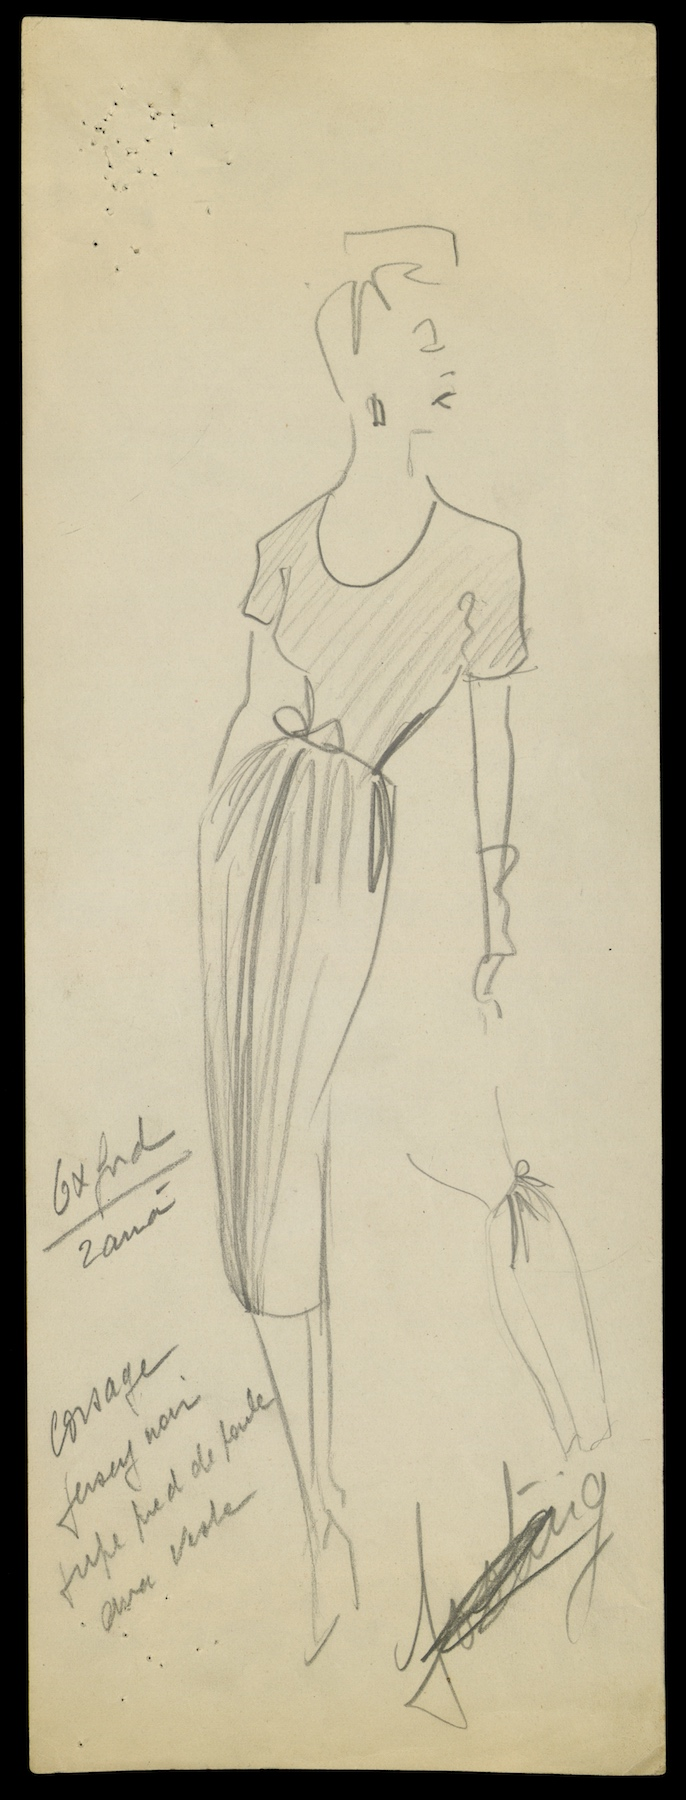 Sketch by Christian Dior for model Oxford, Spring-Summer 1947 Haute Couture collection © Christian Dior.